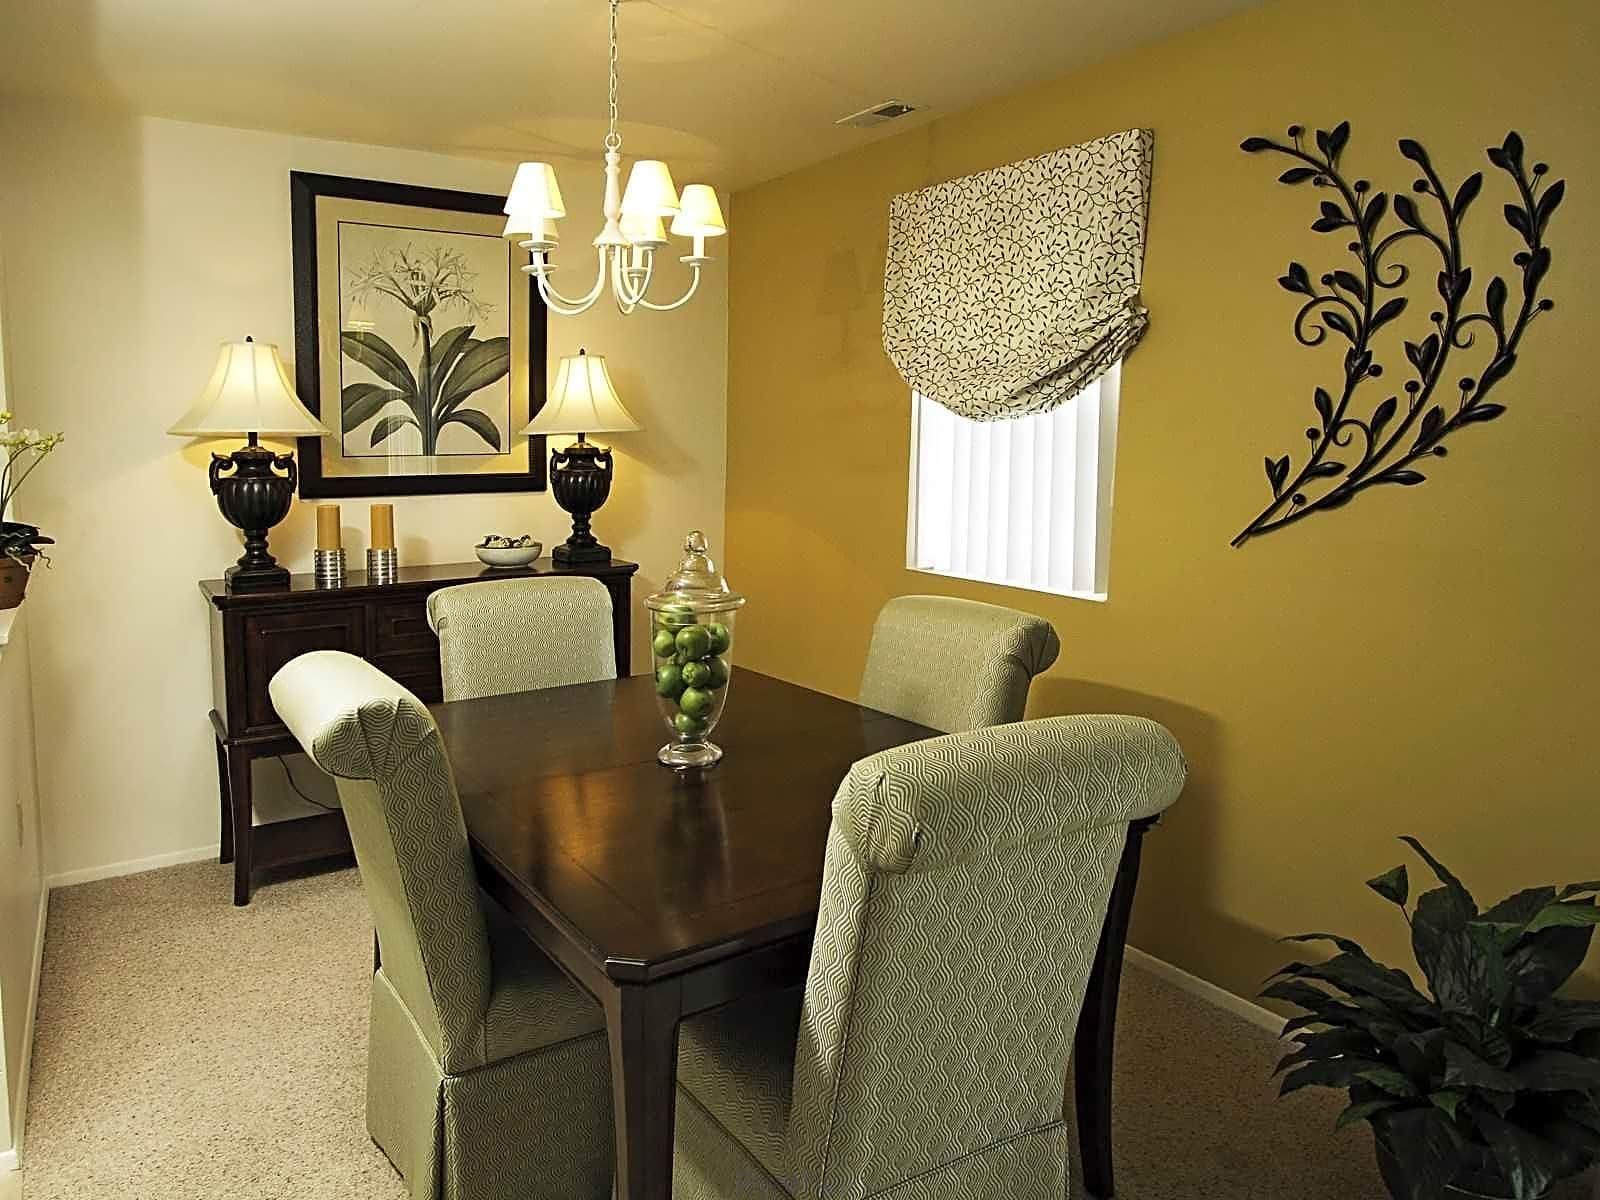 Park East Apartments - Rosedale, MD 21237